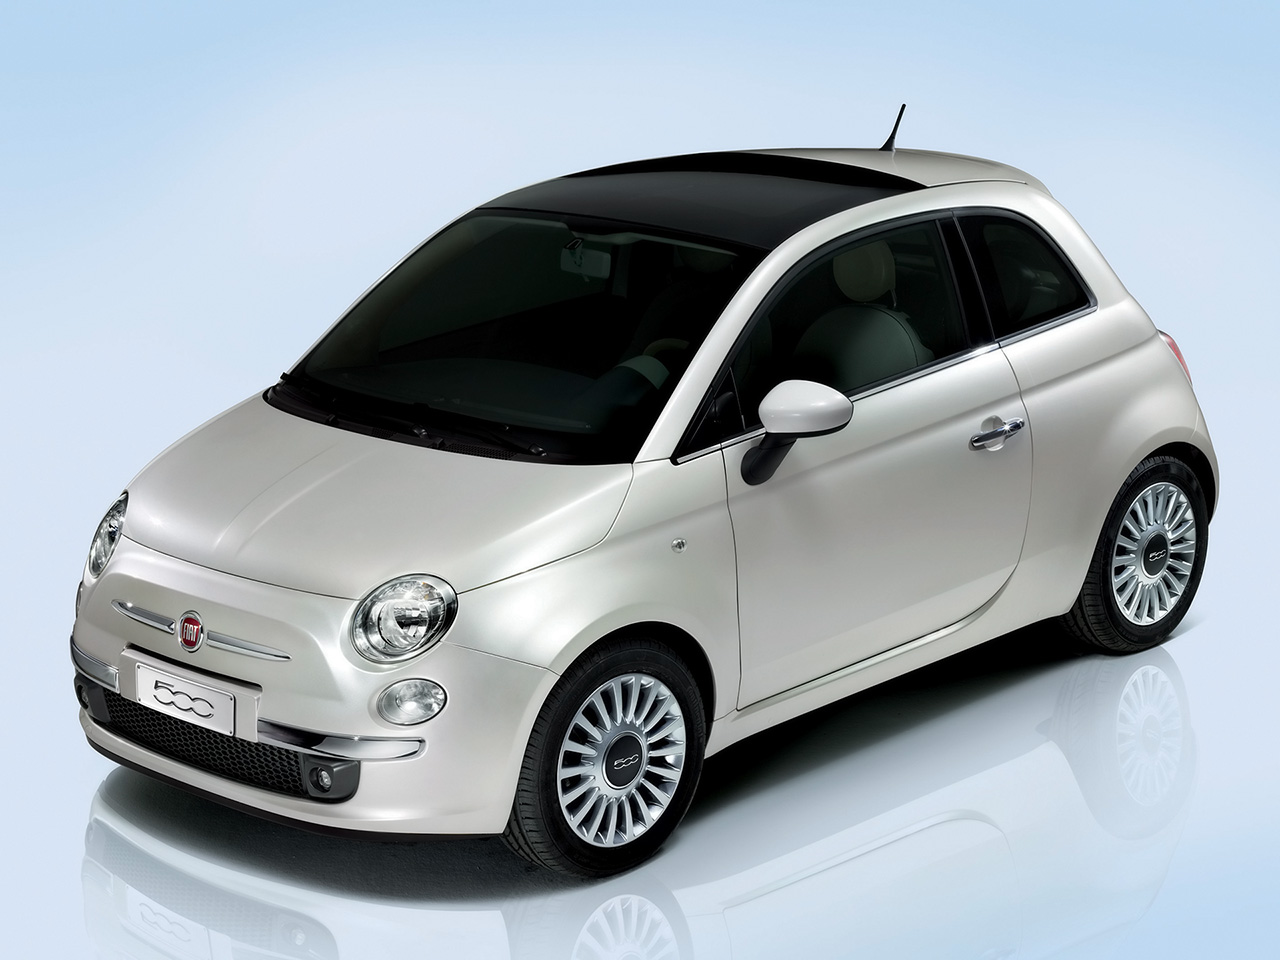 2008 Fiat 500 Wallpaper For Iphone